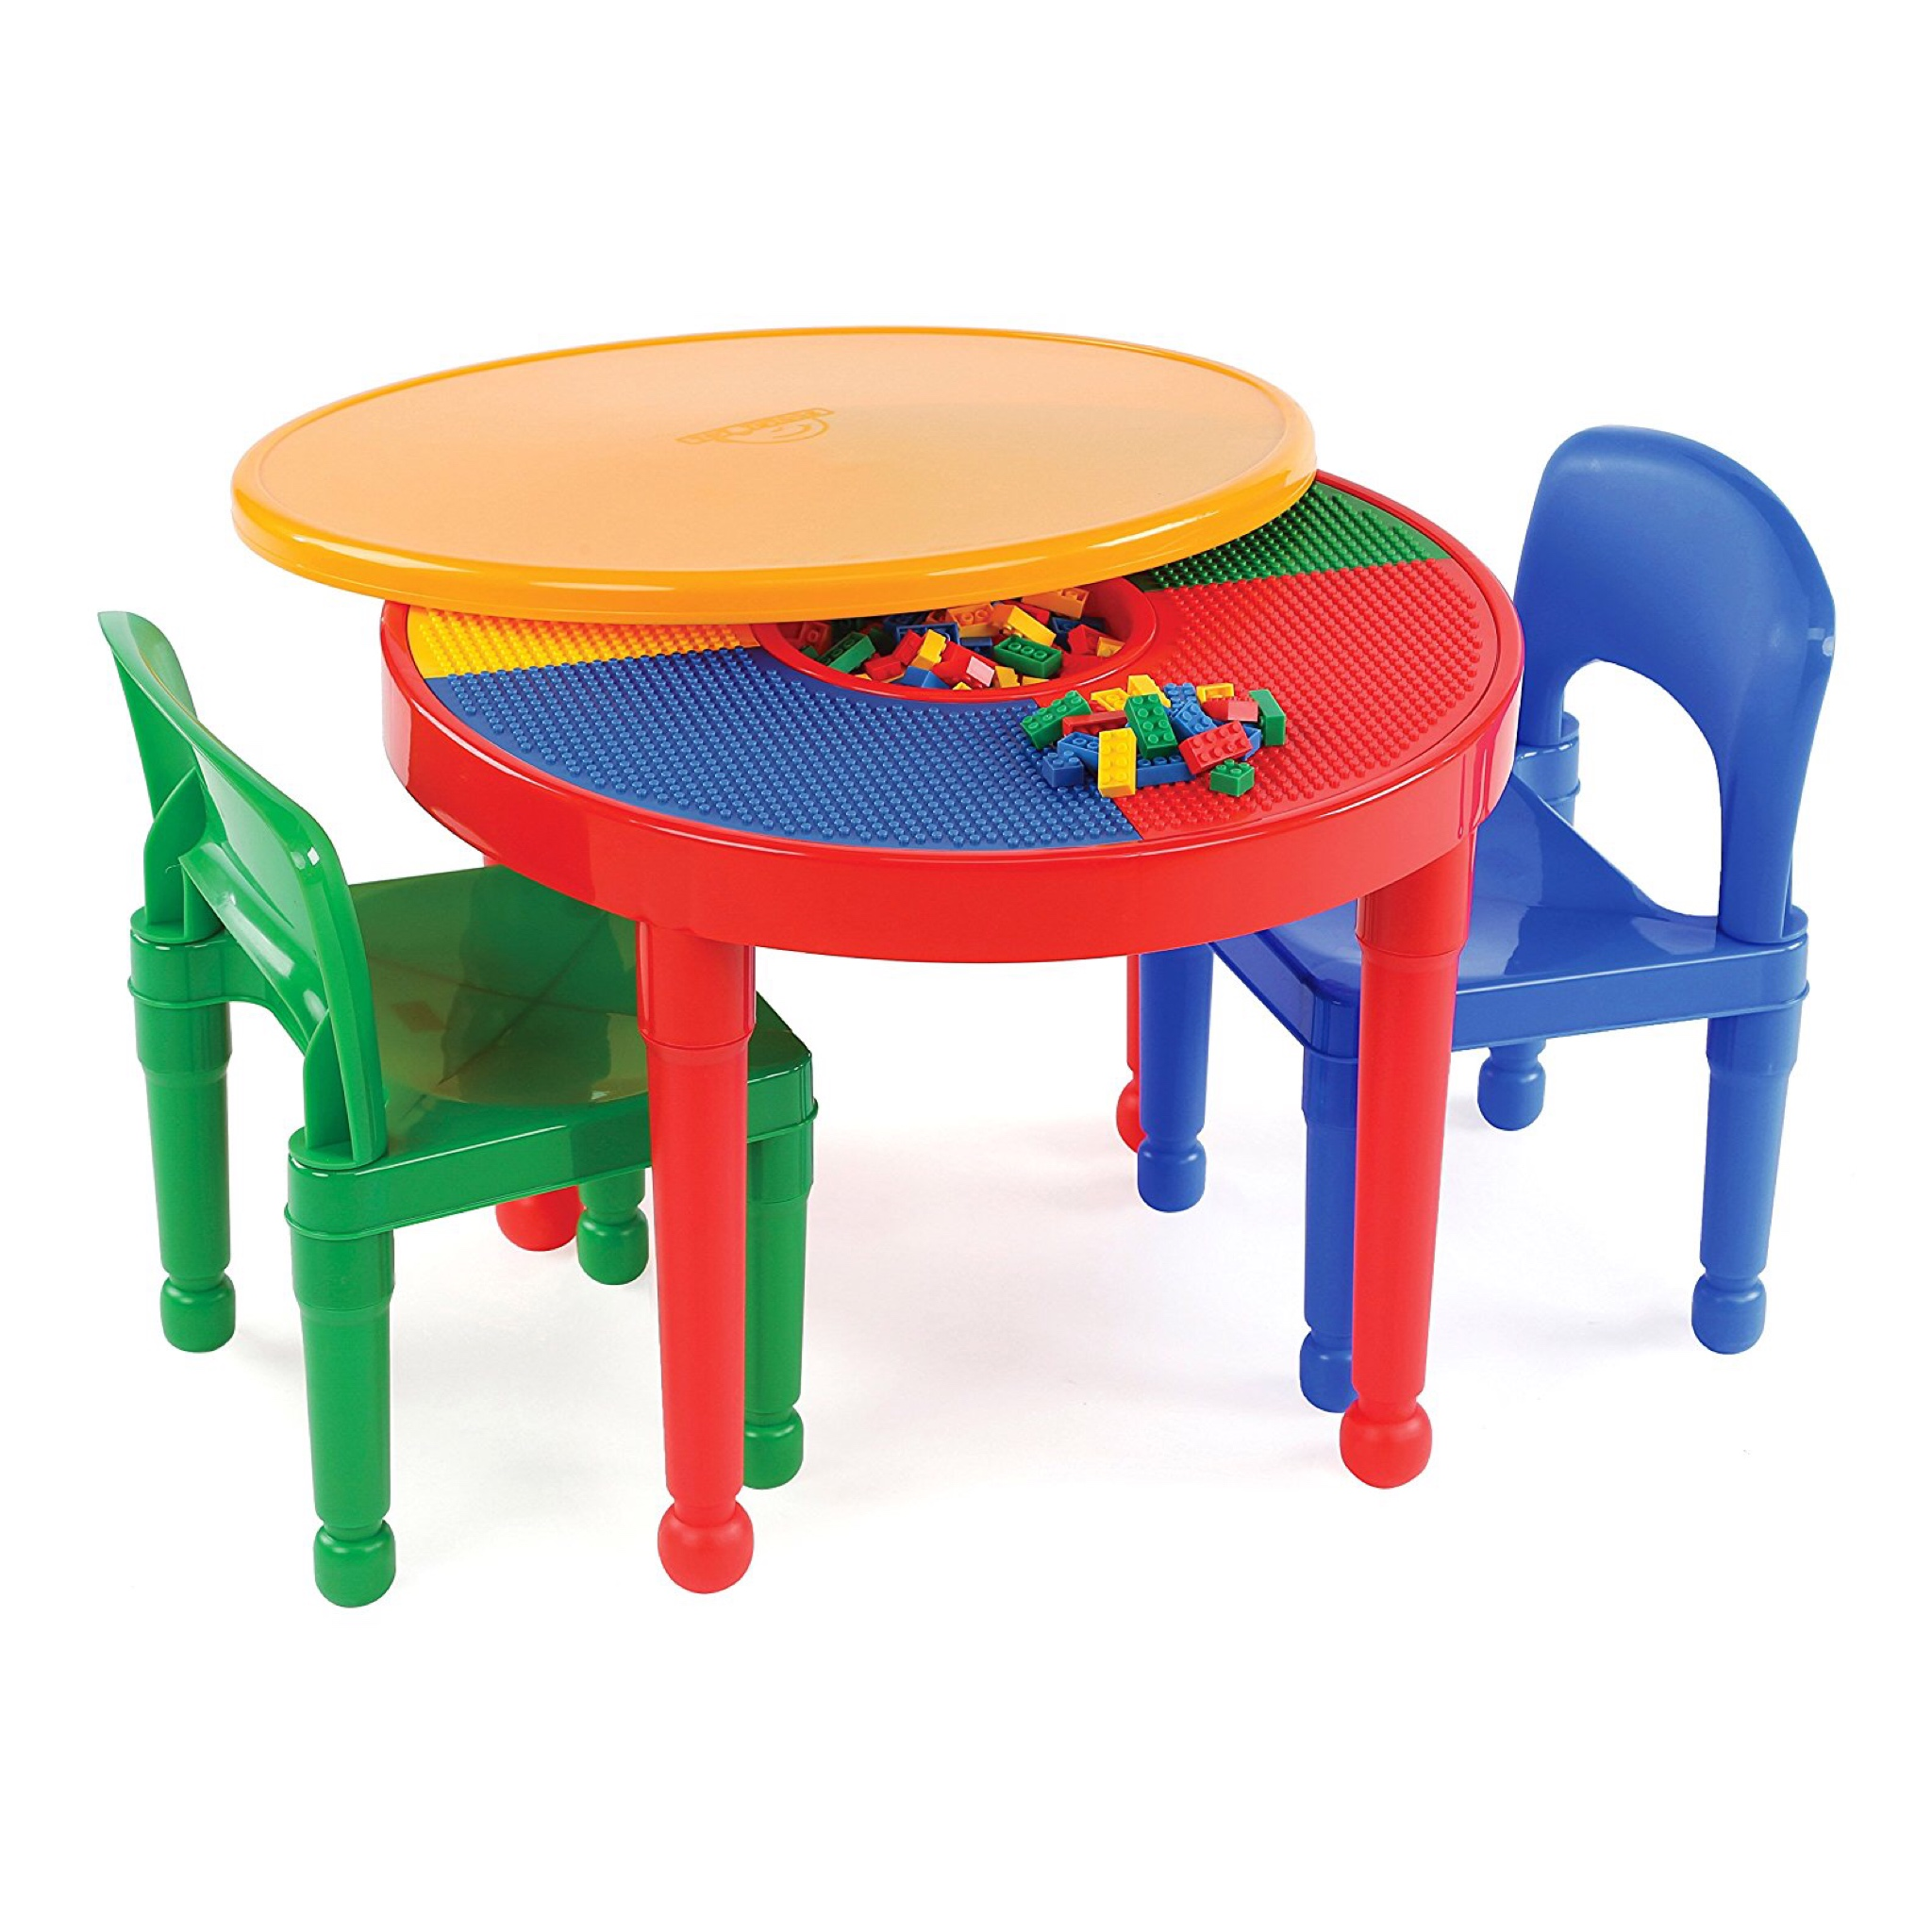 โต๊ะเลโก้เอนกประสงค์ทรงกลม Tot Tutors 2-in-1 Plastic LEGO Compartible Activity Table & 2 Chairs Set - Primary Colors